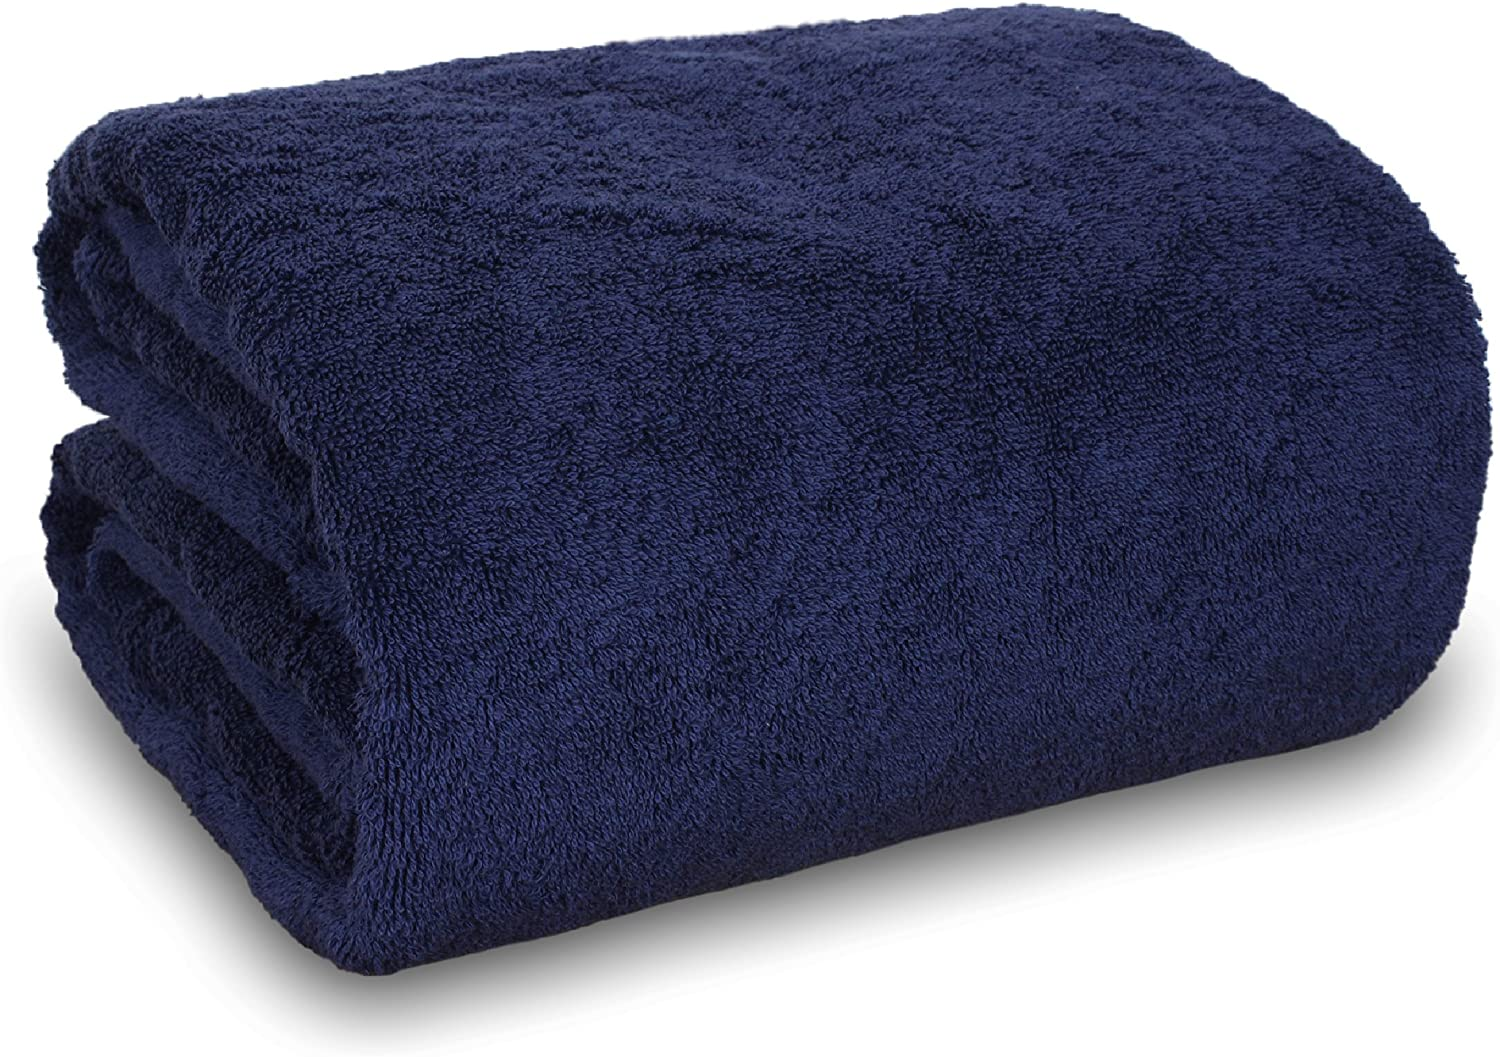 Branded goods BC BARE COTTON Luxury Hotel Towel Oversized Cheap sale Spa Cotton Turkish